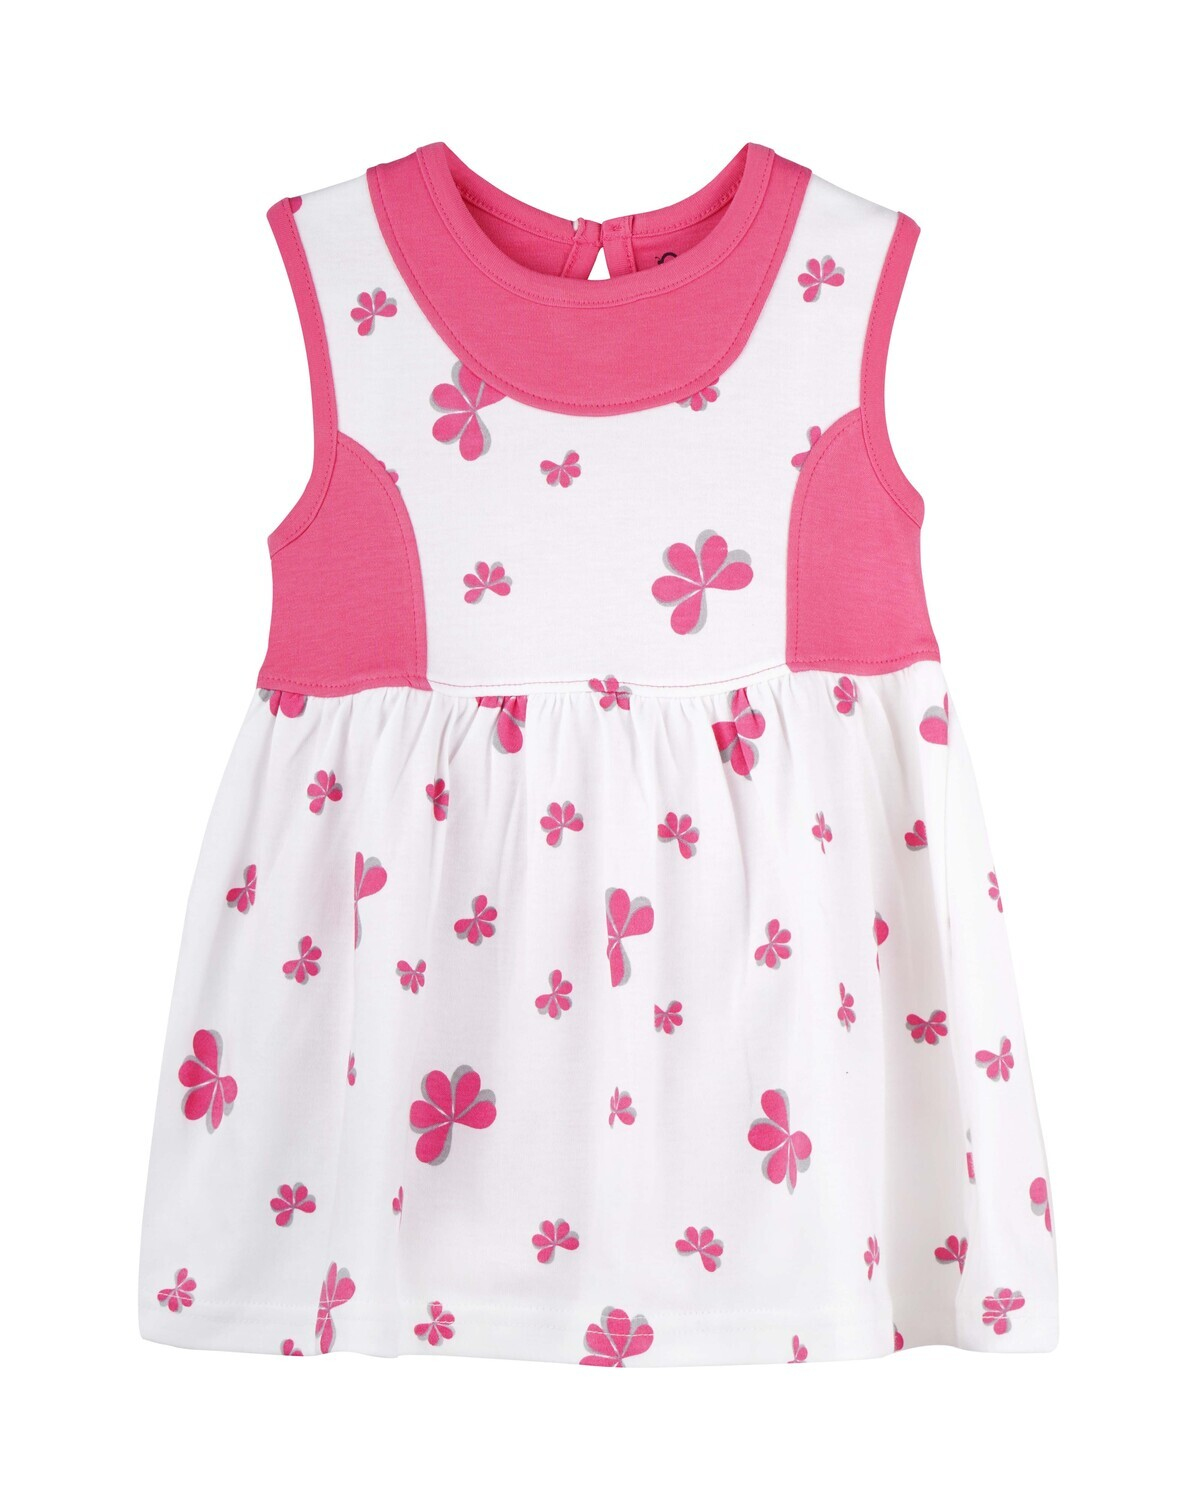 ESTELLE Fuchsia Sleeveless Frock and Panties for Baby Girls